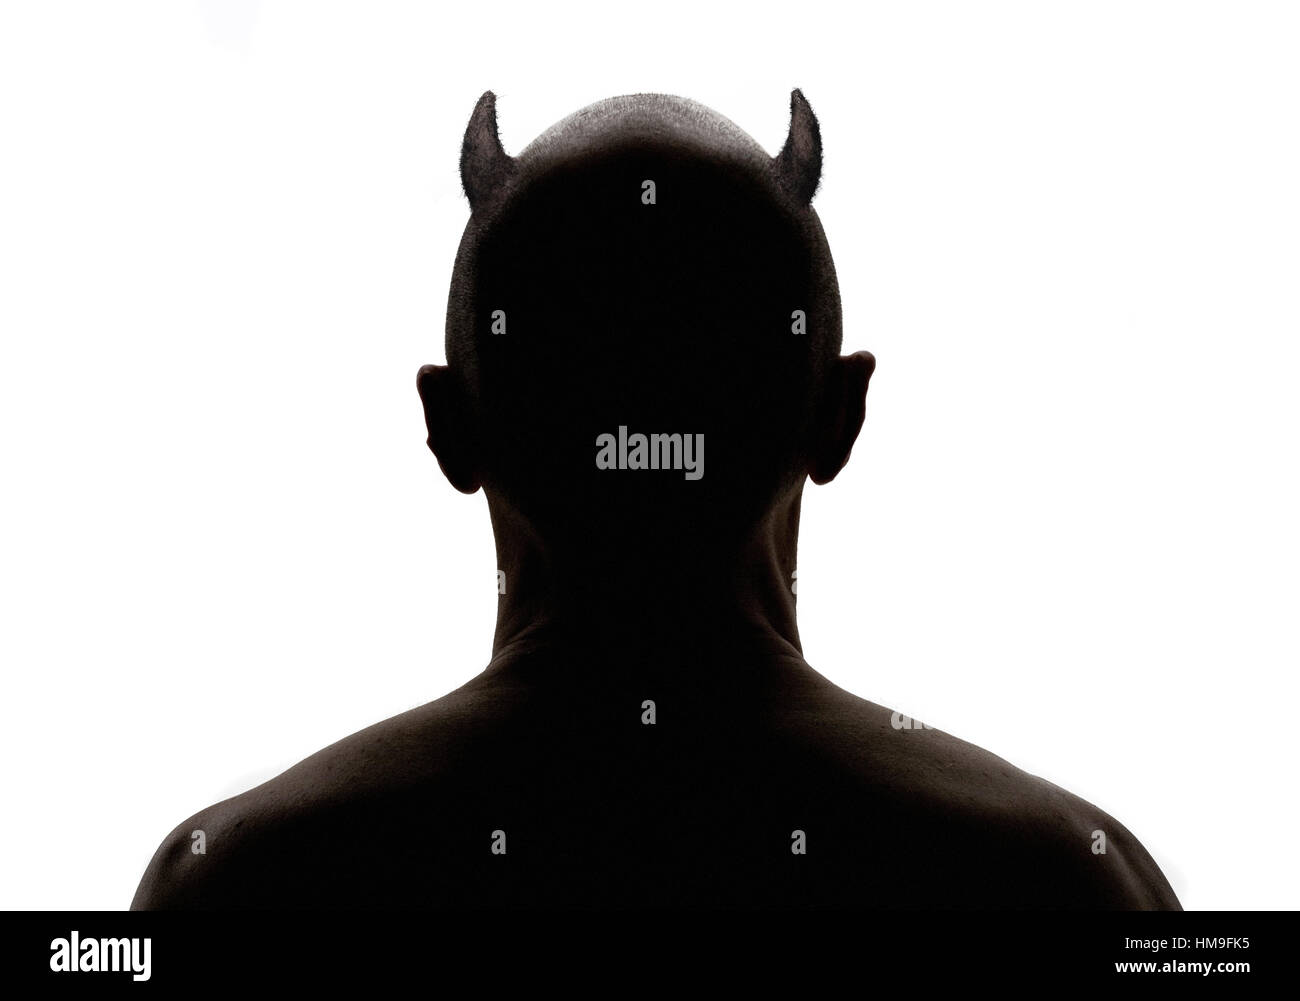 Rear View Silhouette Portrait of Devil with Horns Stock